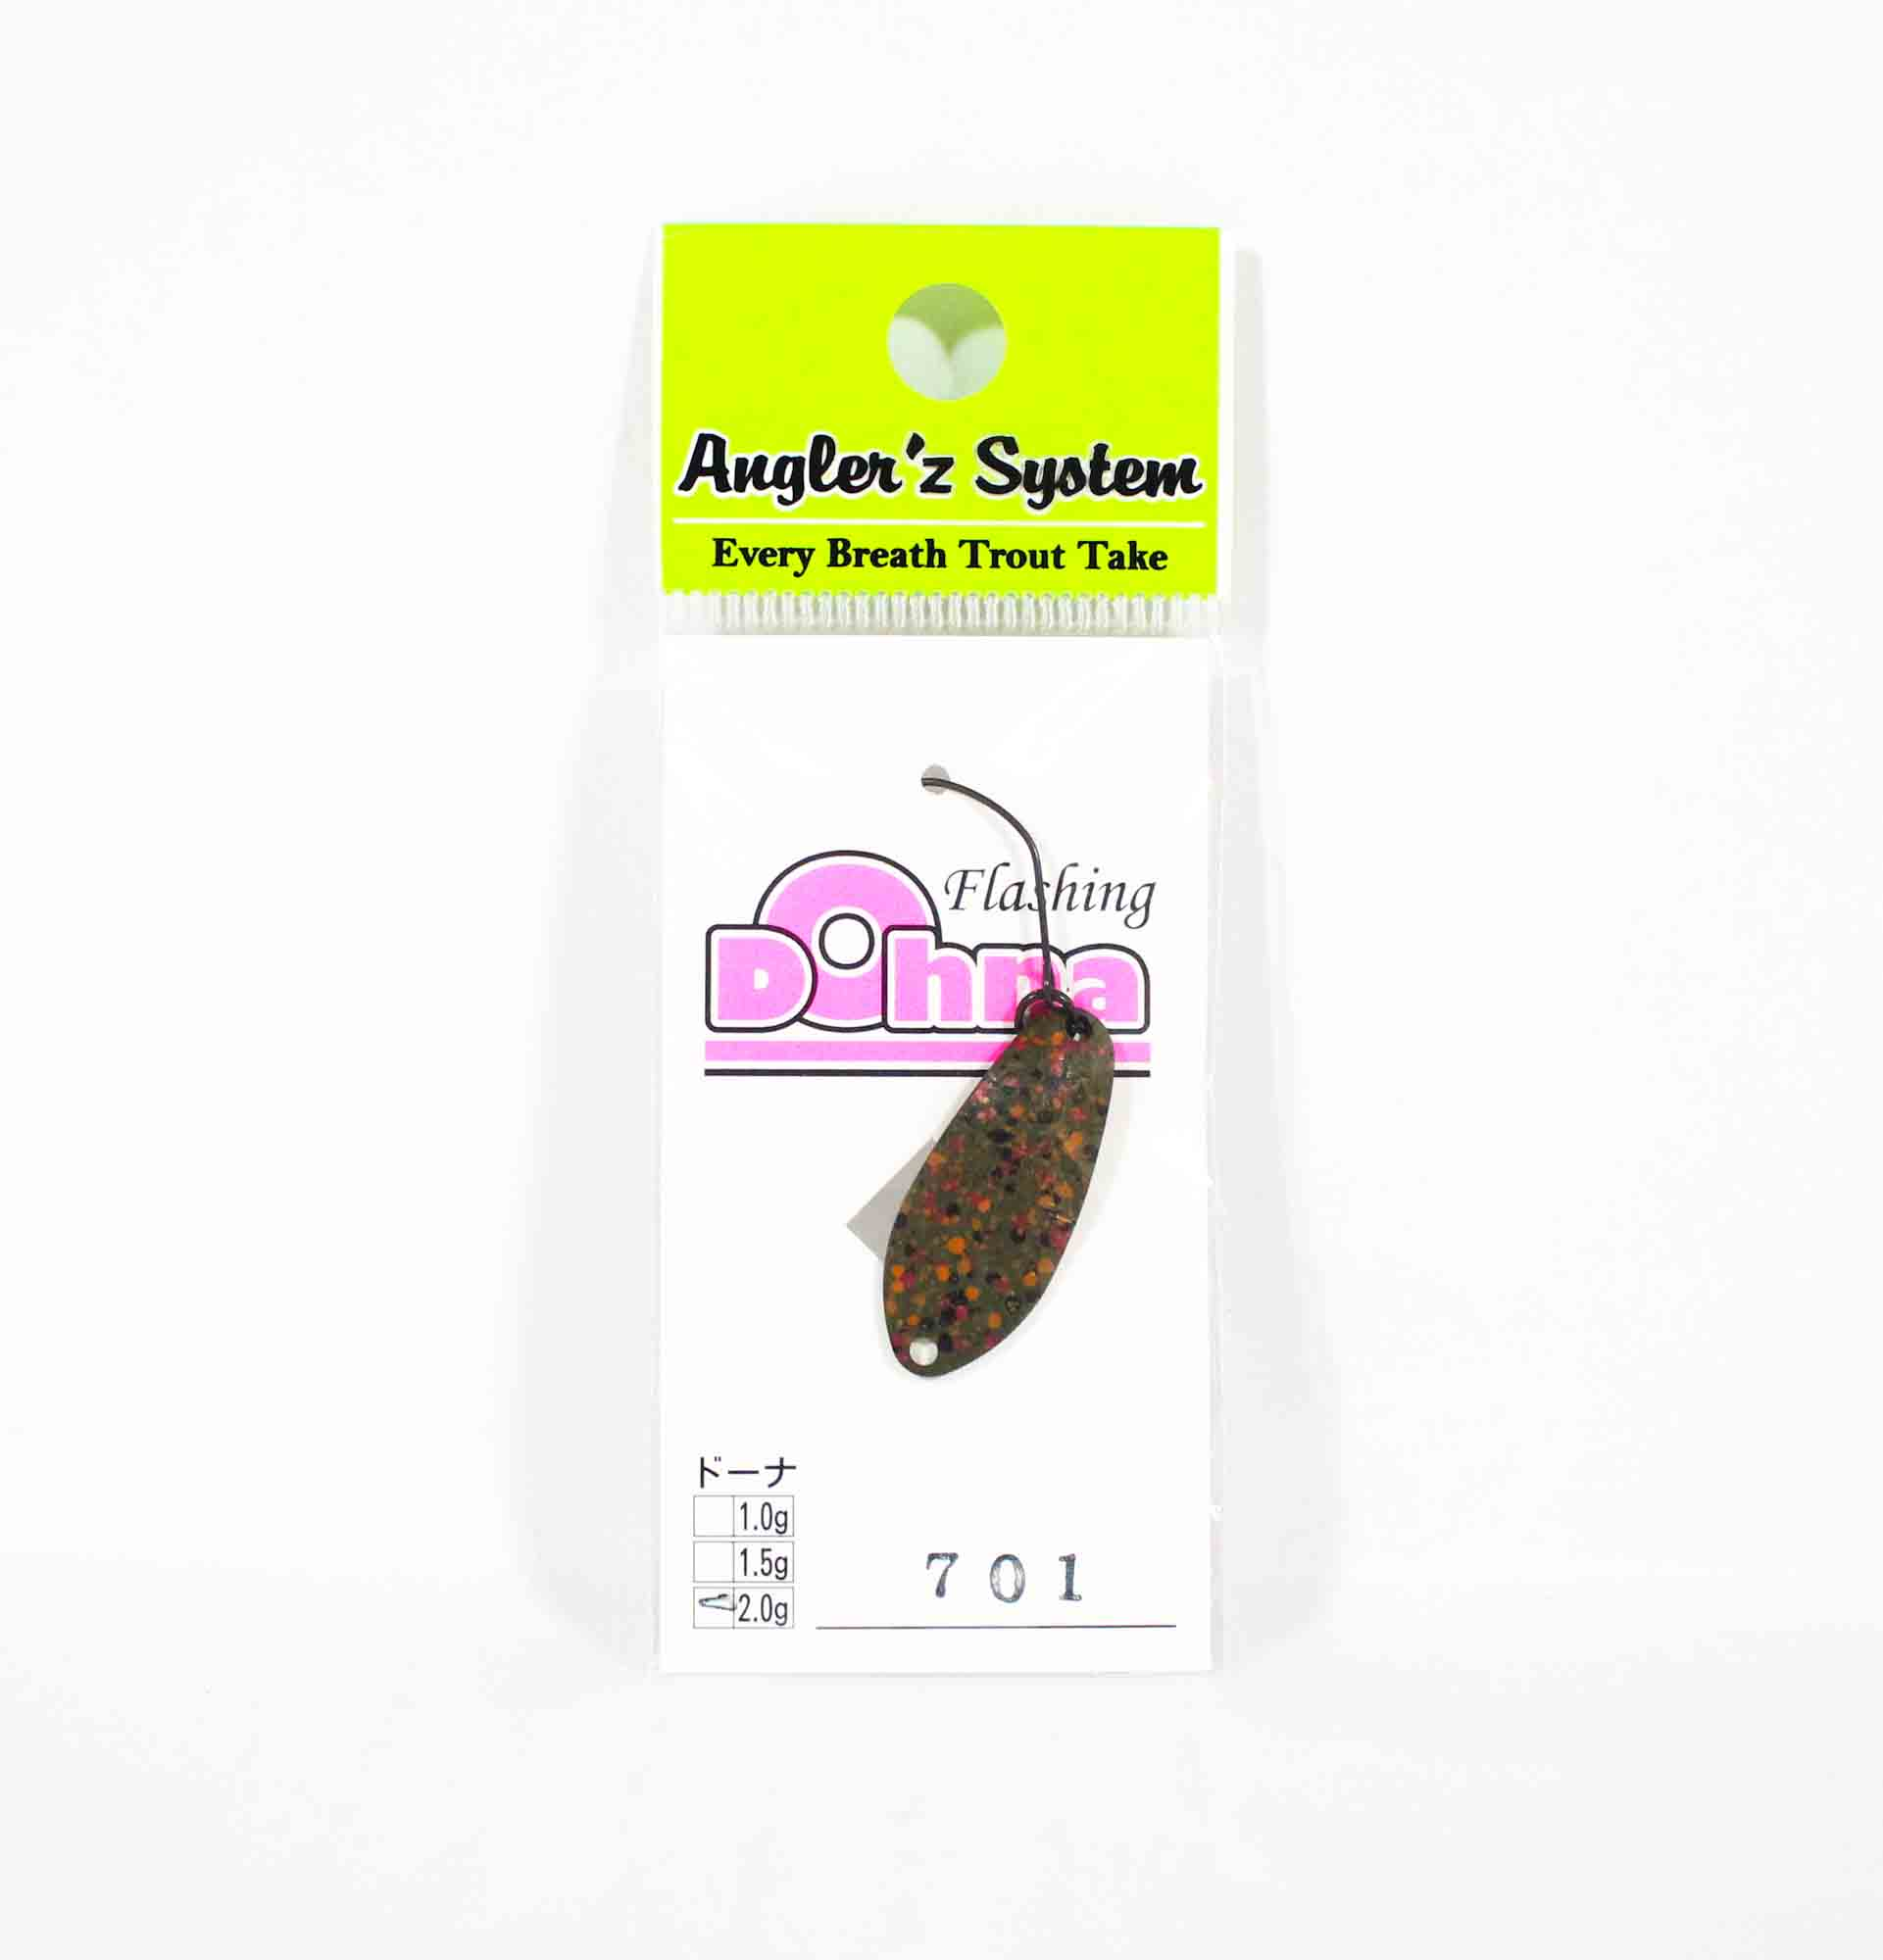 Anglers System Antem Dohna 2.0 grams Spoon Sinking Lure 701 (6207)